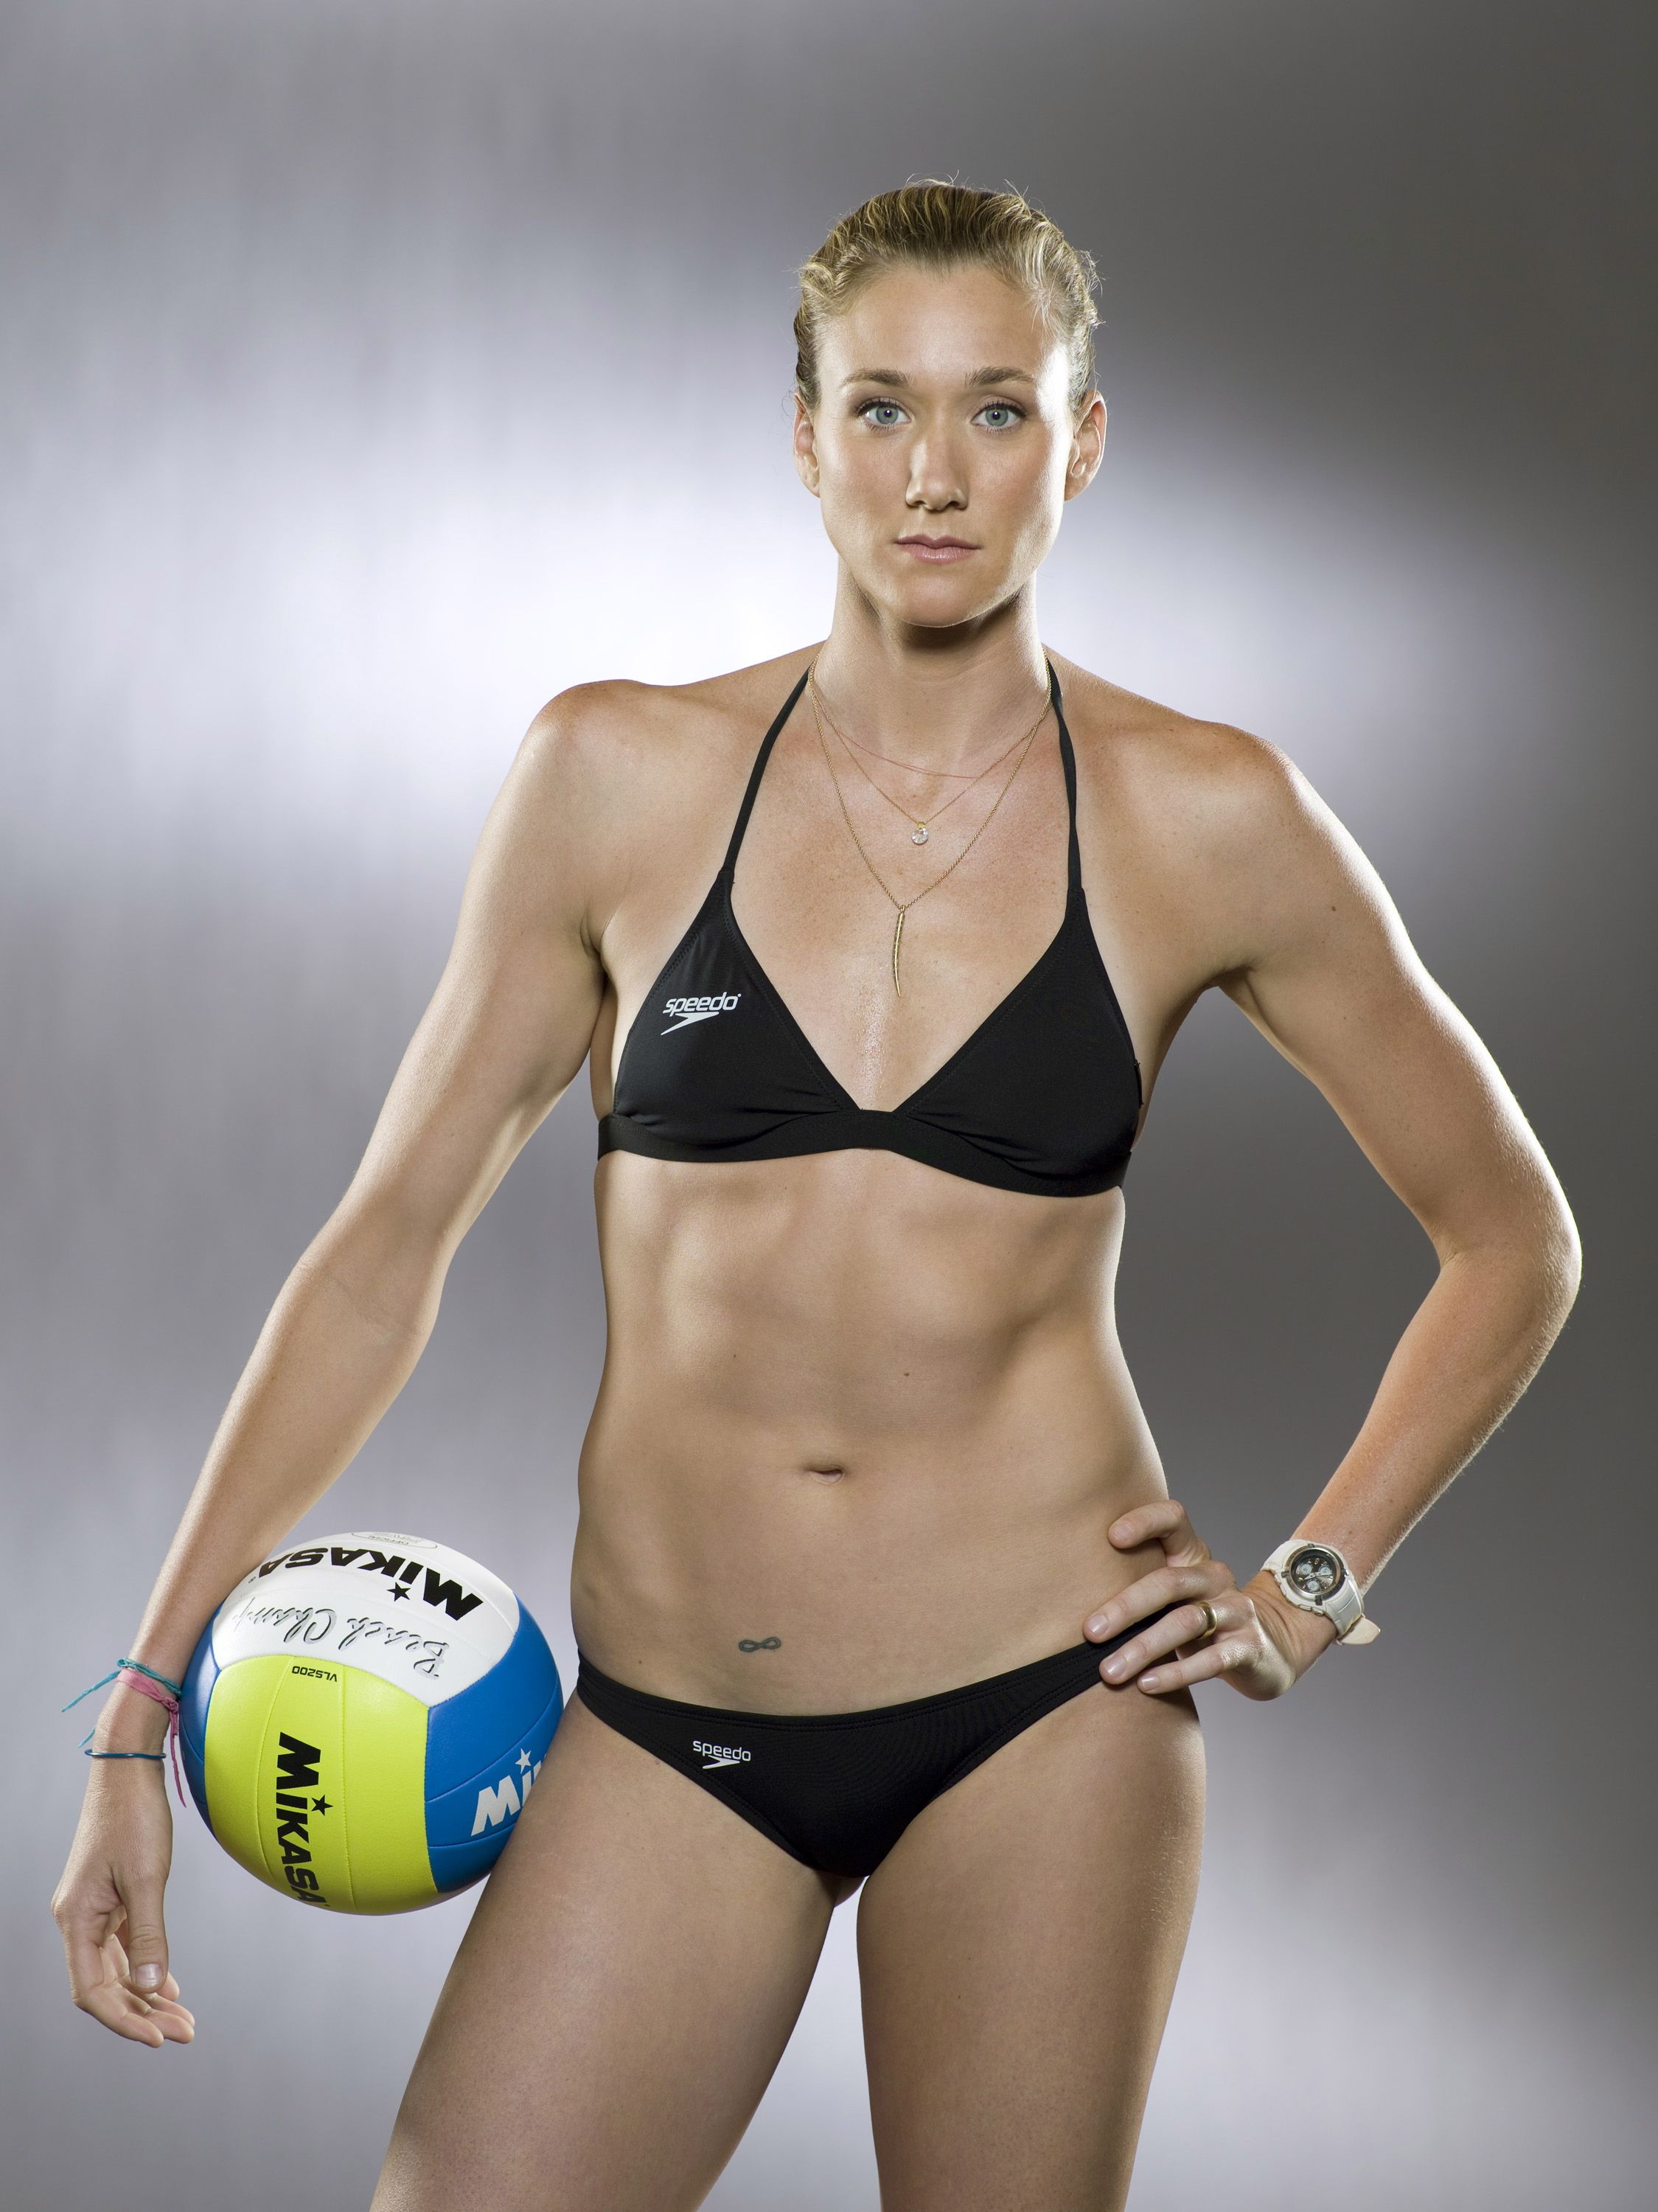 Beach Voley Porn Comic kerri walsh beach volleyball butts - nude photos. comments: 2